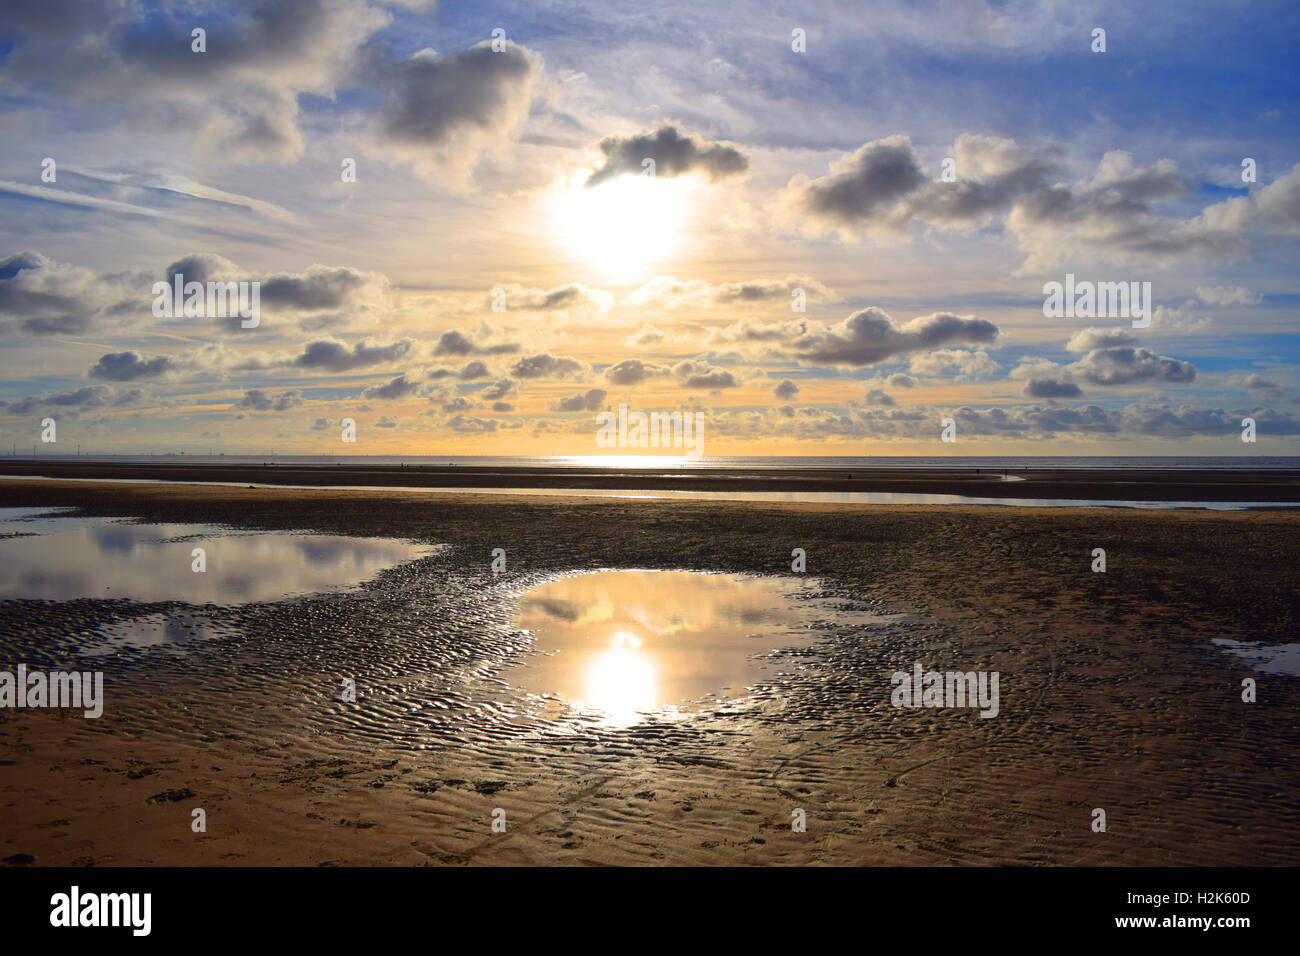 Sun in the sky over sandy beach with tide out - Stock Image